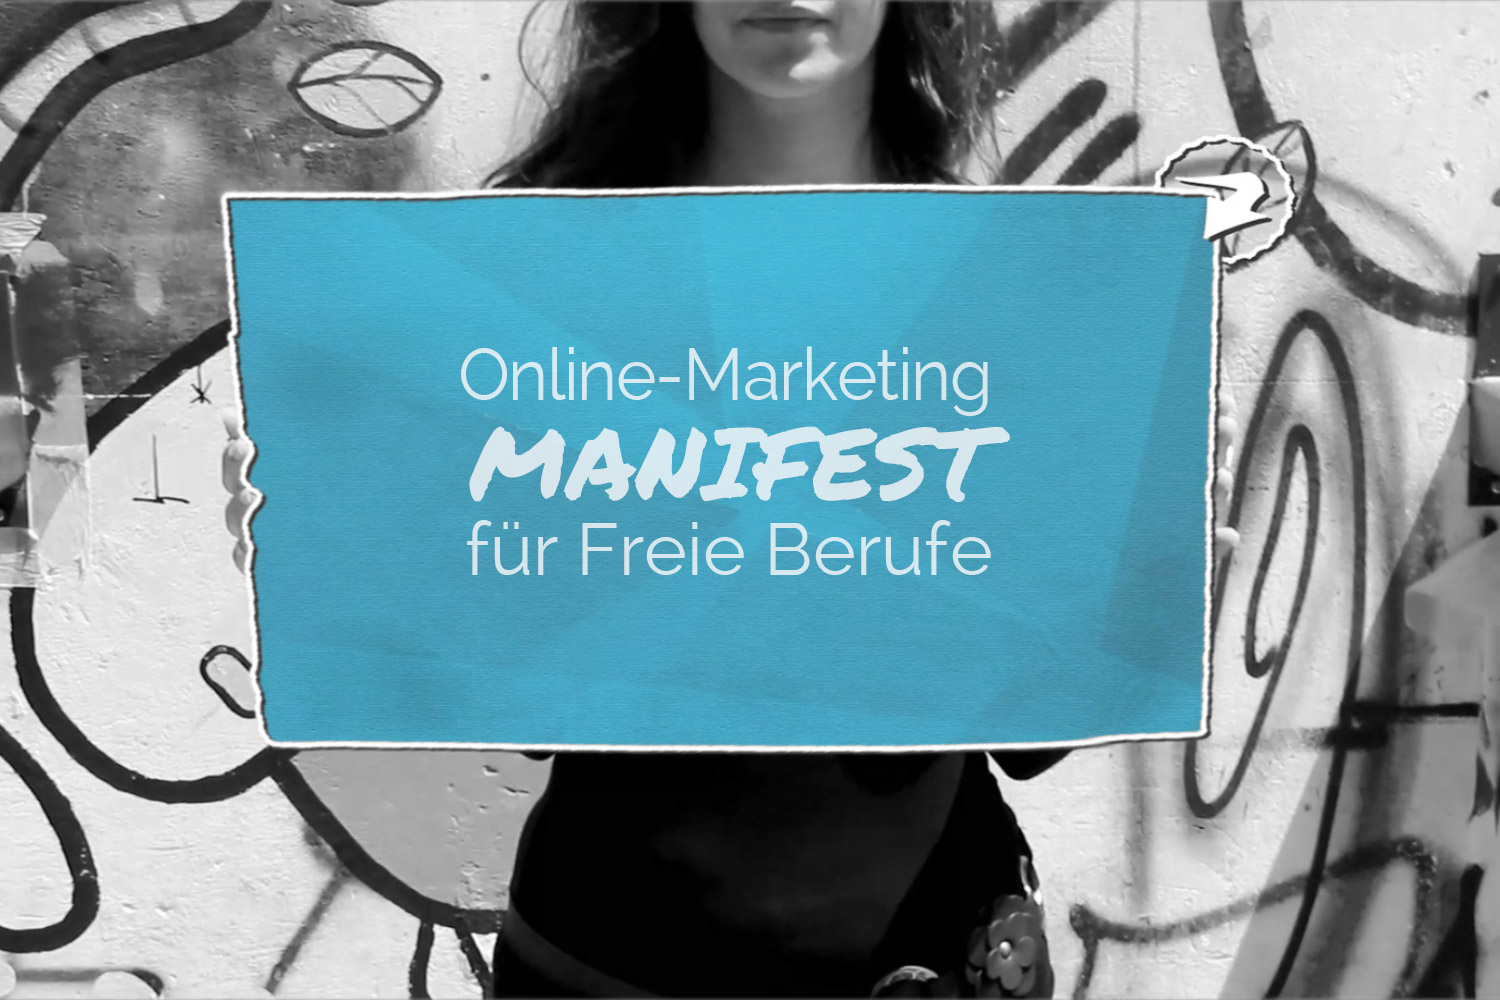 Online-Marketing Manifest